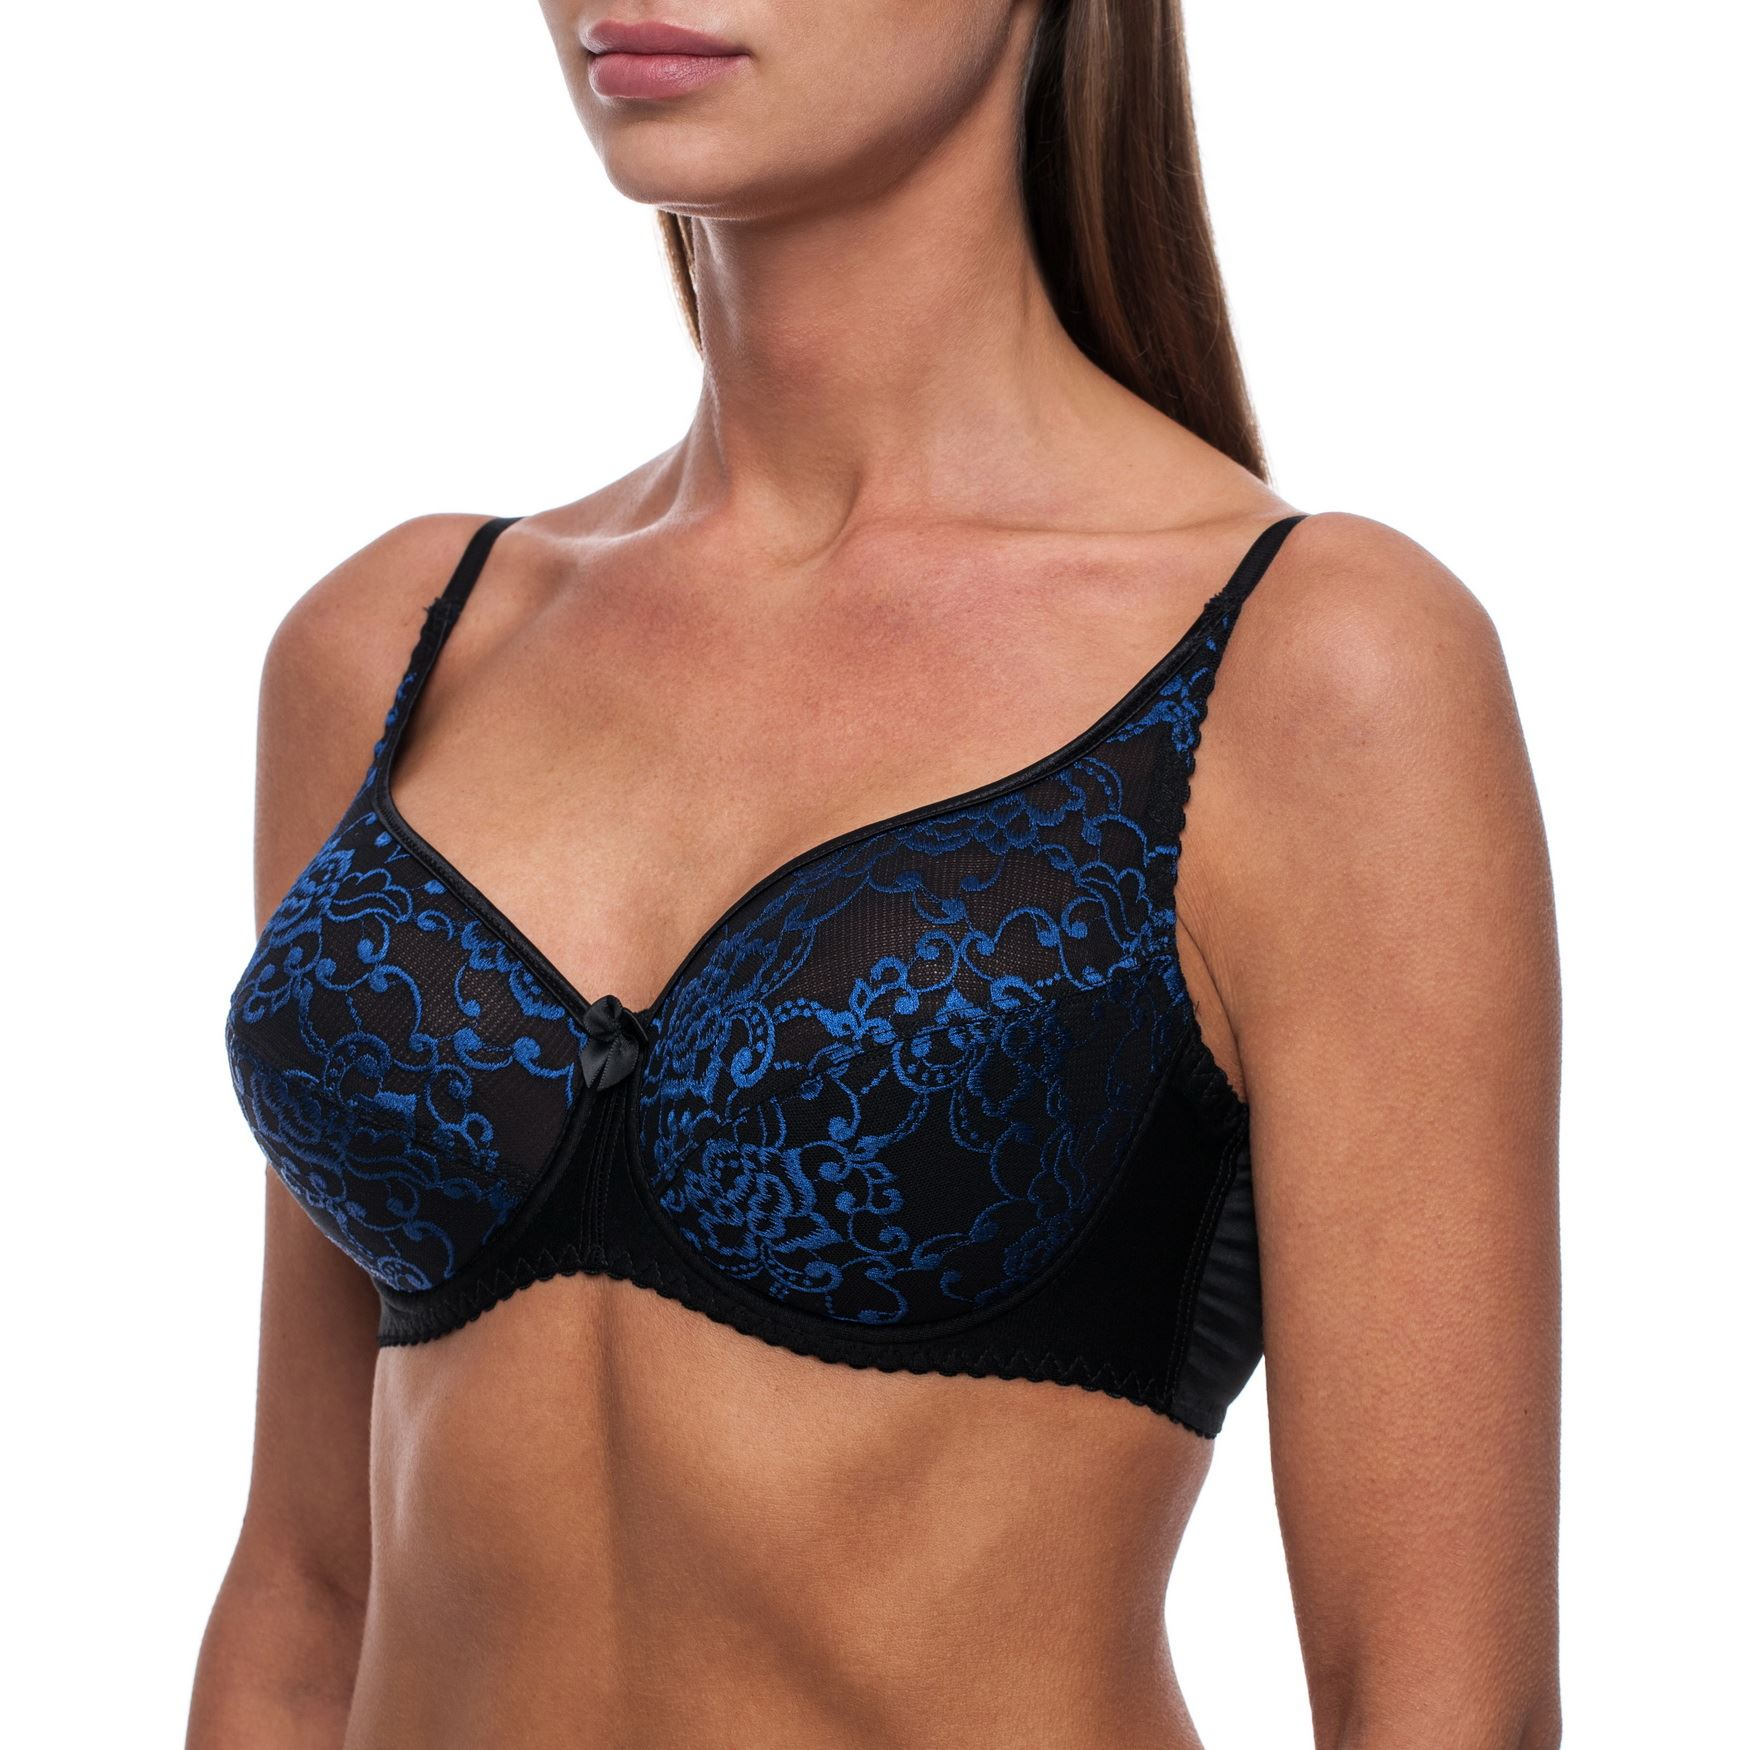 Full-Coverage-Plus-Size-Underwire-Minimizer-Padded-Comfortable-Lace-Figure-Bra thumbnail 8